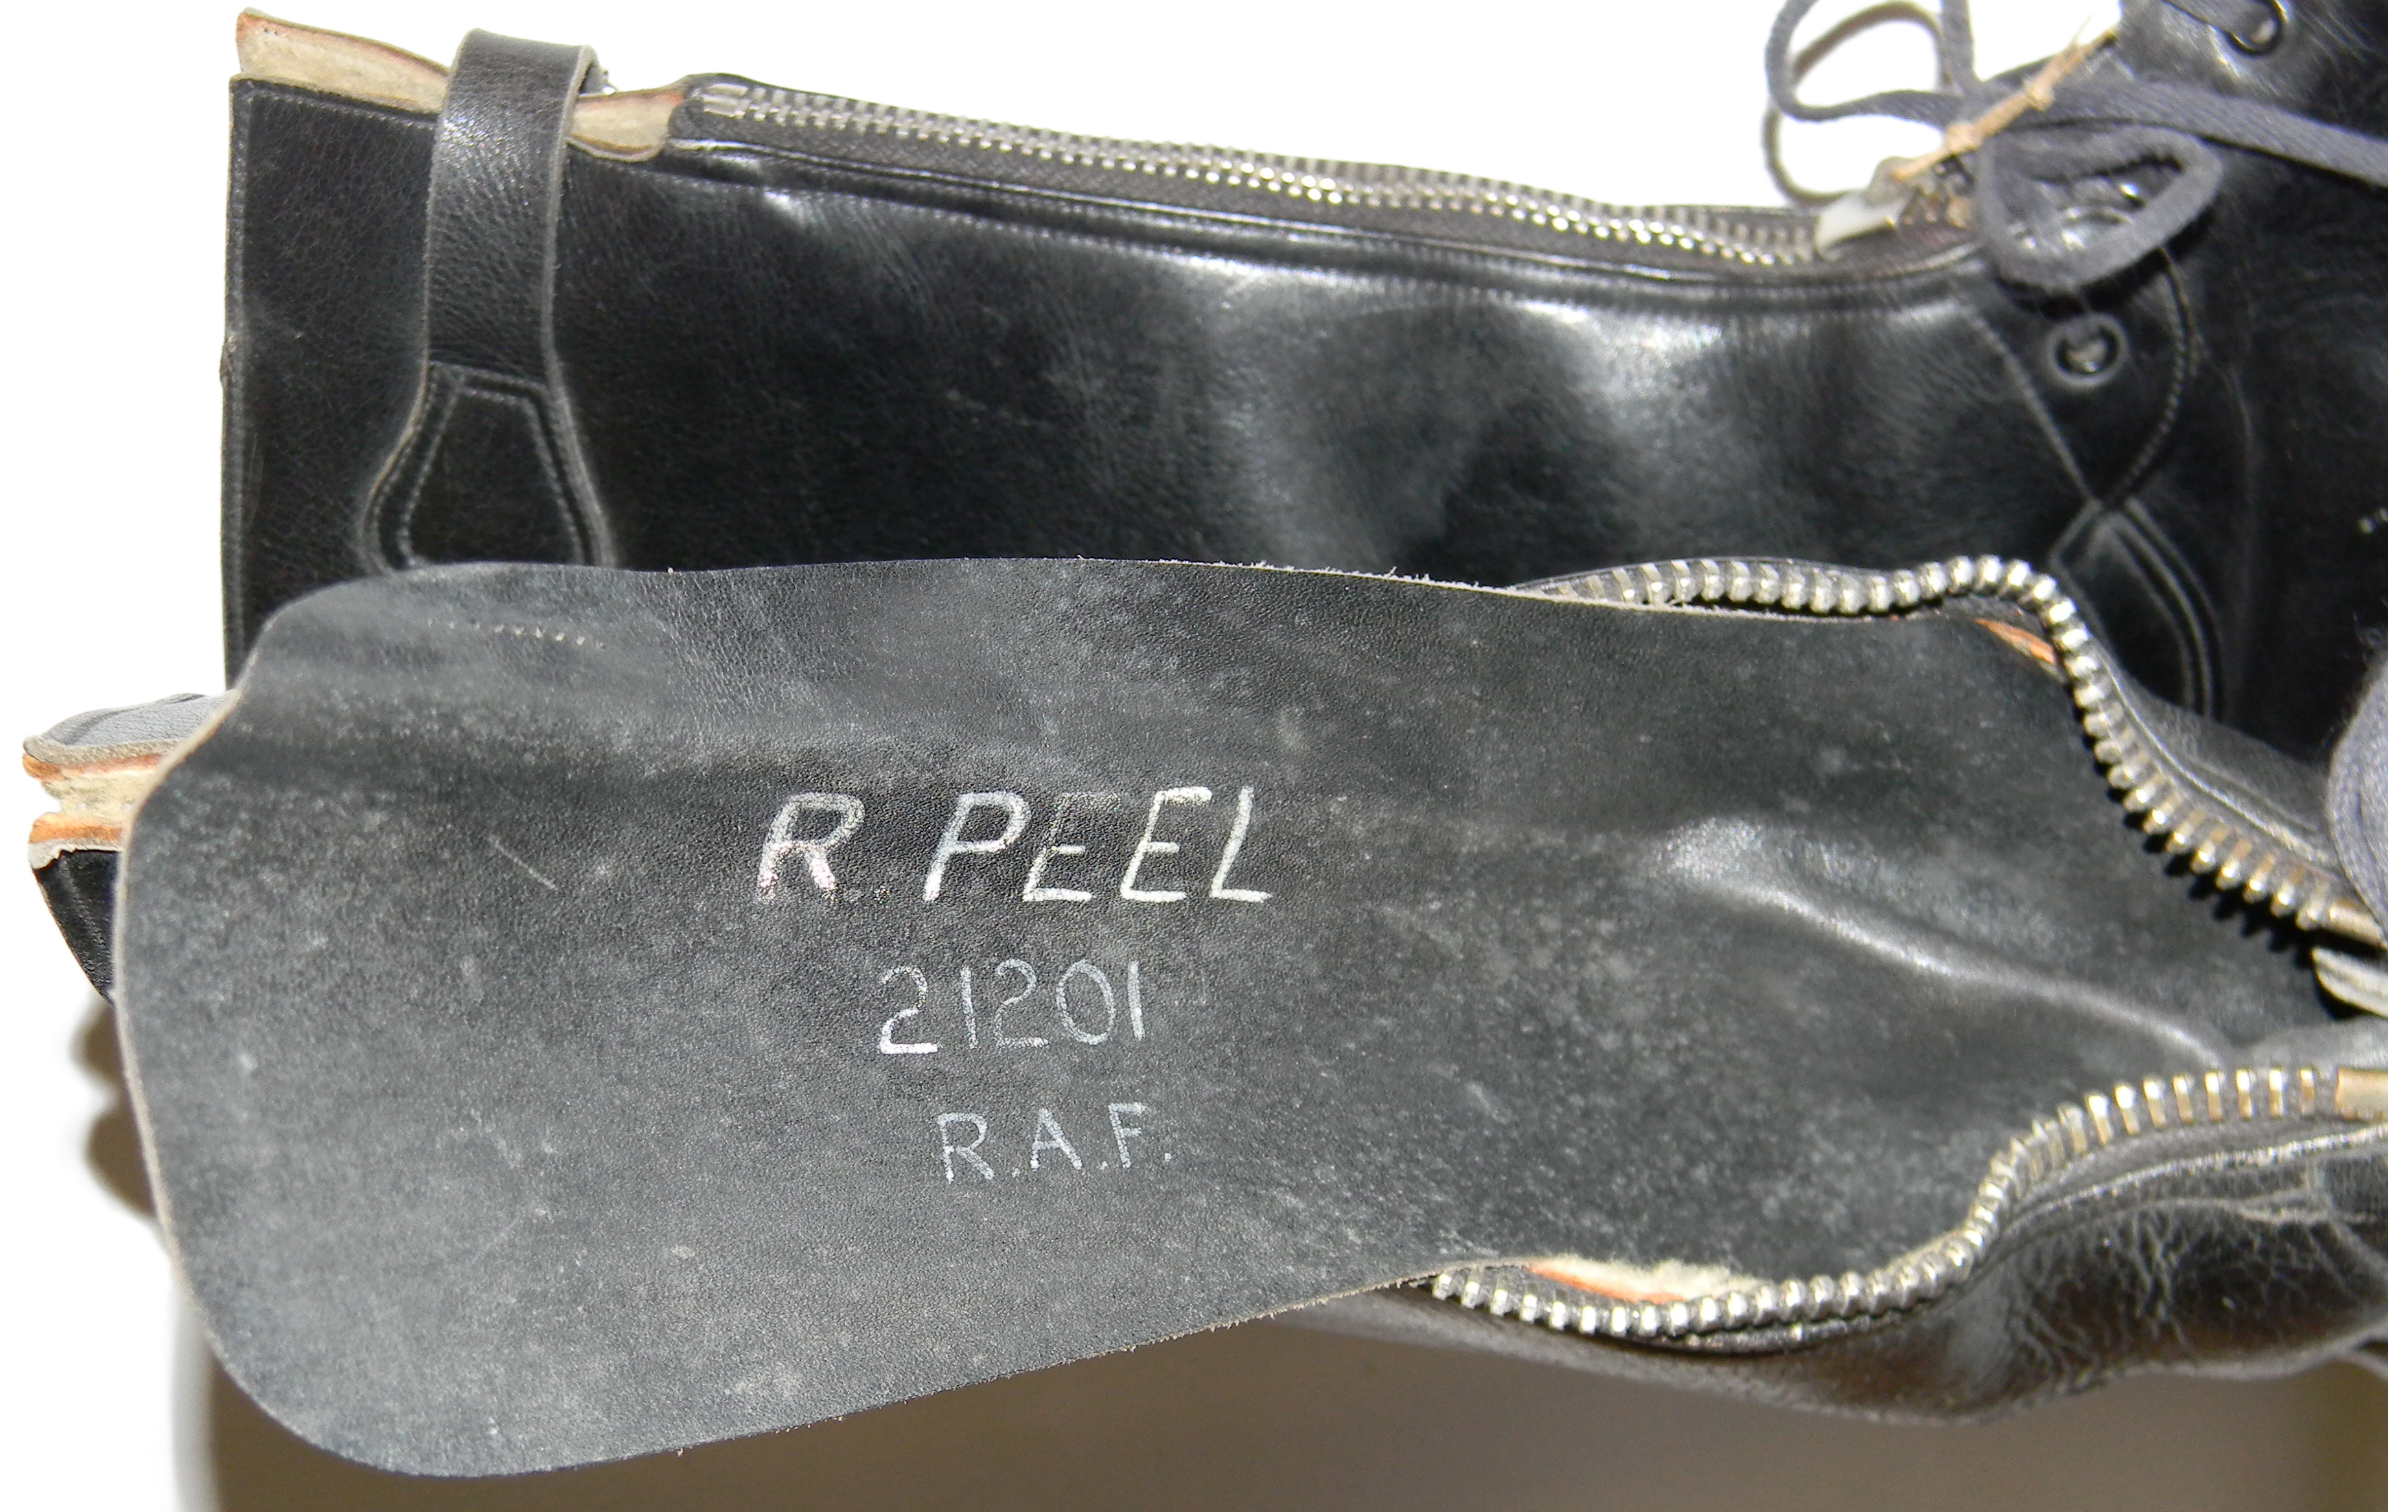 RAF Nuffield Escape Boots + history